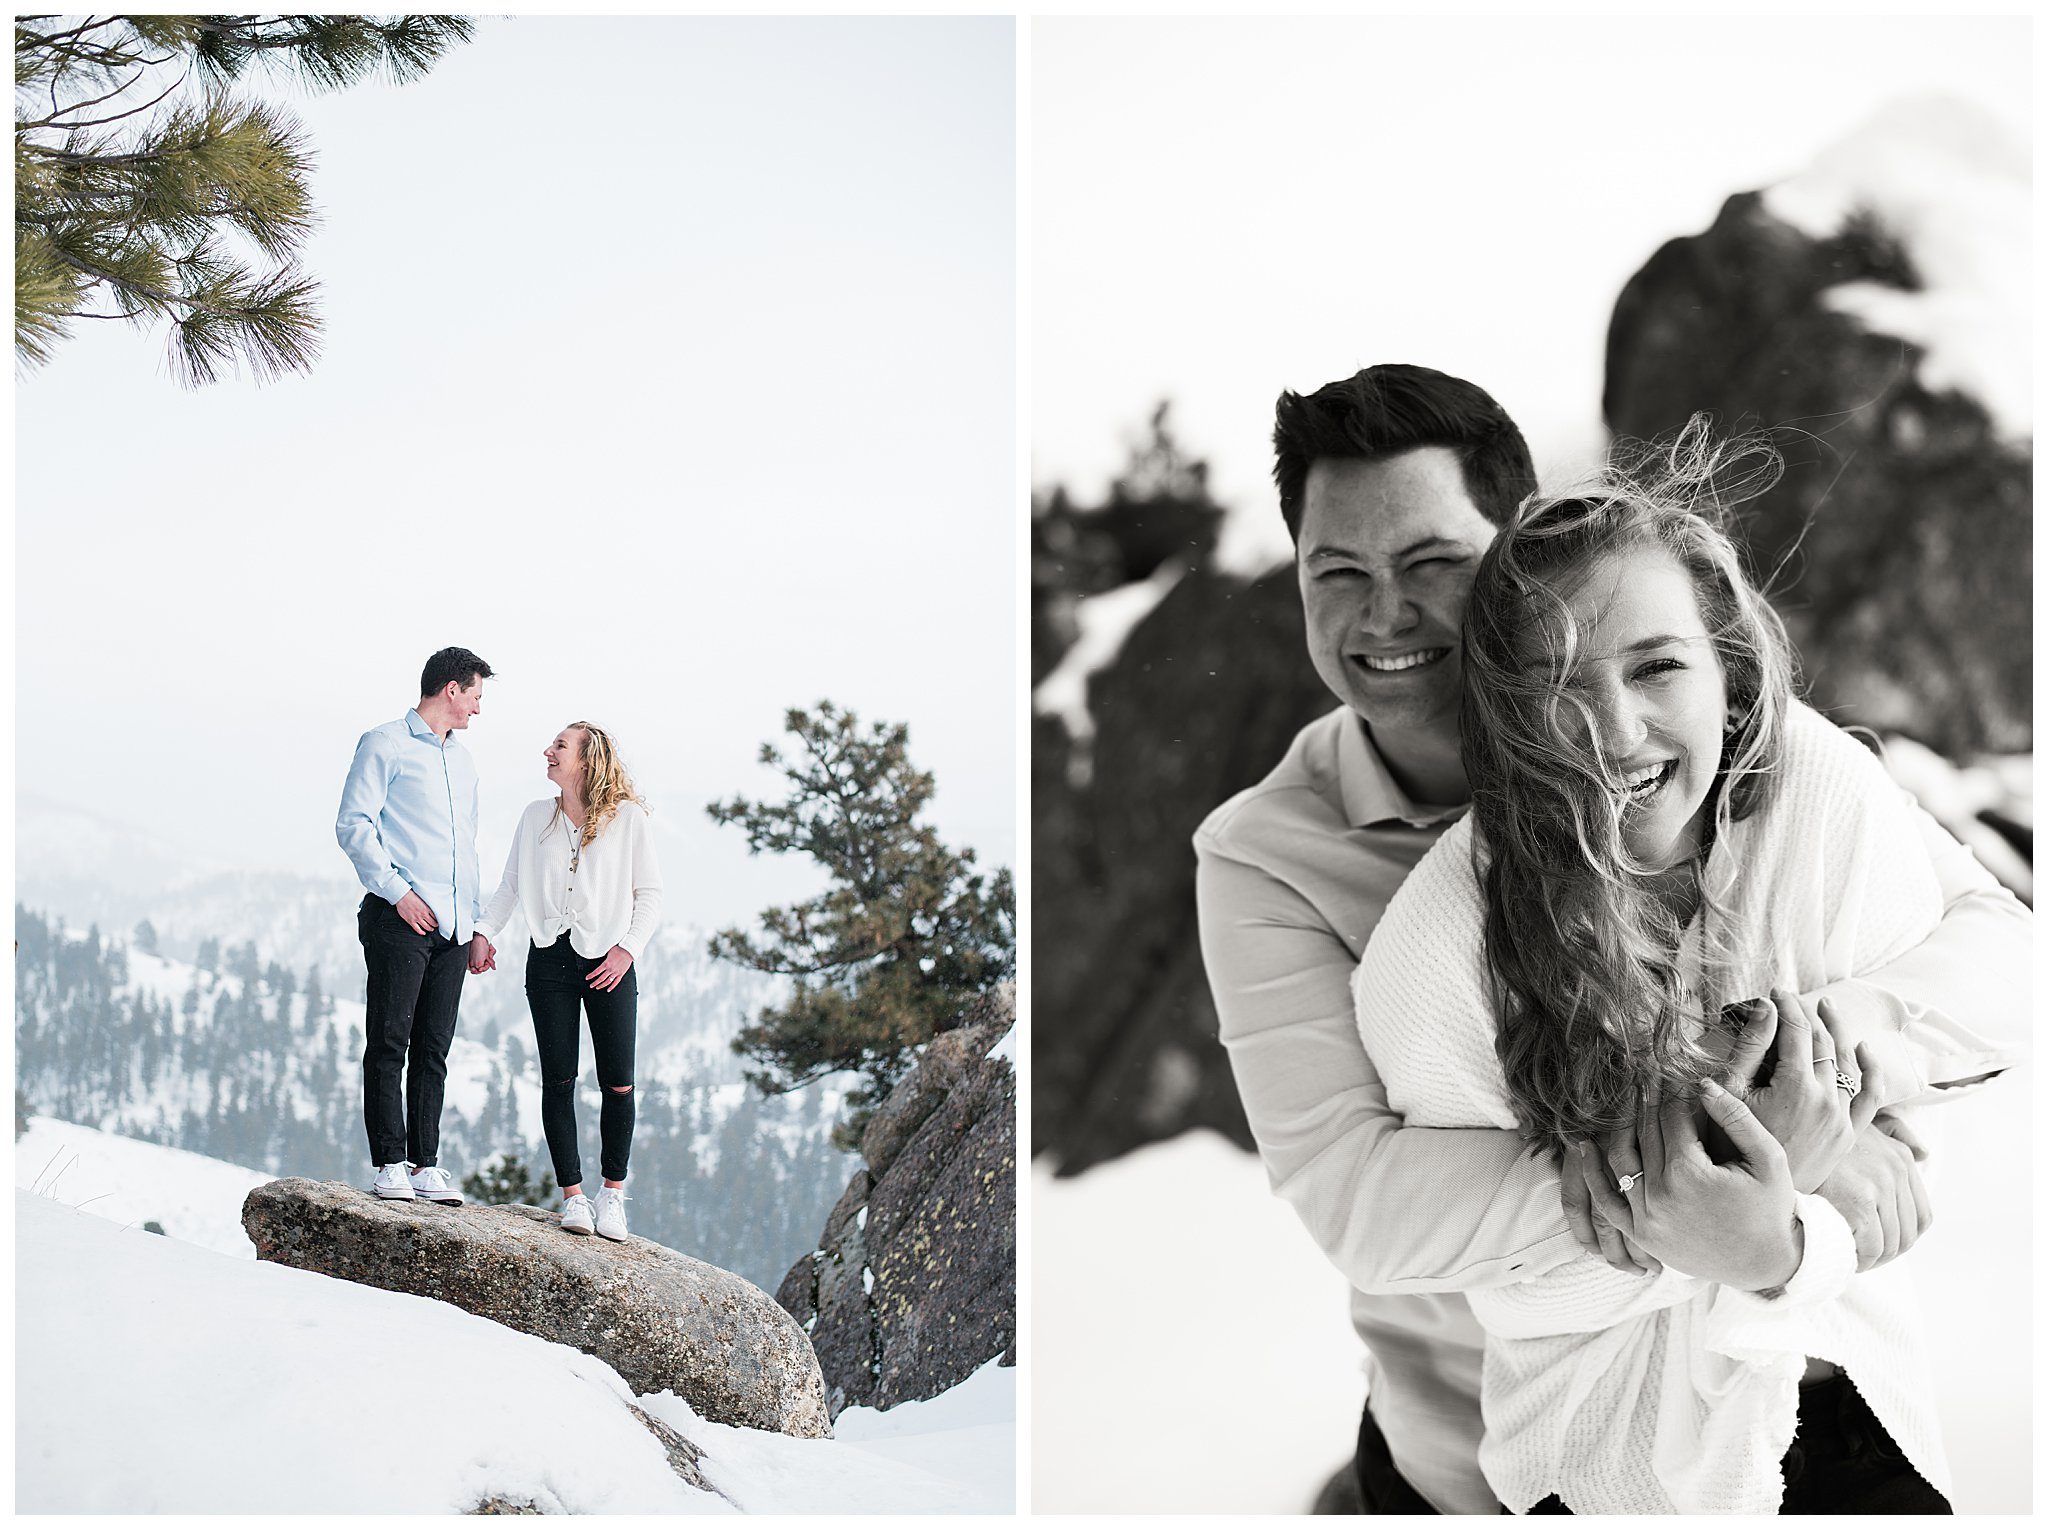 Boise Wedding Photographer, Idaho engagement photographer, Cozy Posing, Sweaters, PNW Engagement, Wedding, Idaho Engagement Session, Natural Couples Posing Ideas, Cozy Sweaters, mountain engagement, mountain couples photography, casual couples outfit, snow, winter, bogus basin, adventure photography, travel, Forest, boise couples photographer, SS Photography & Design, Sadie Shirts